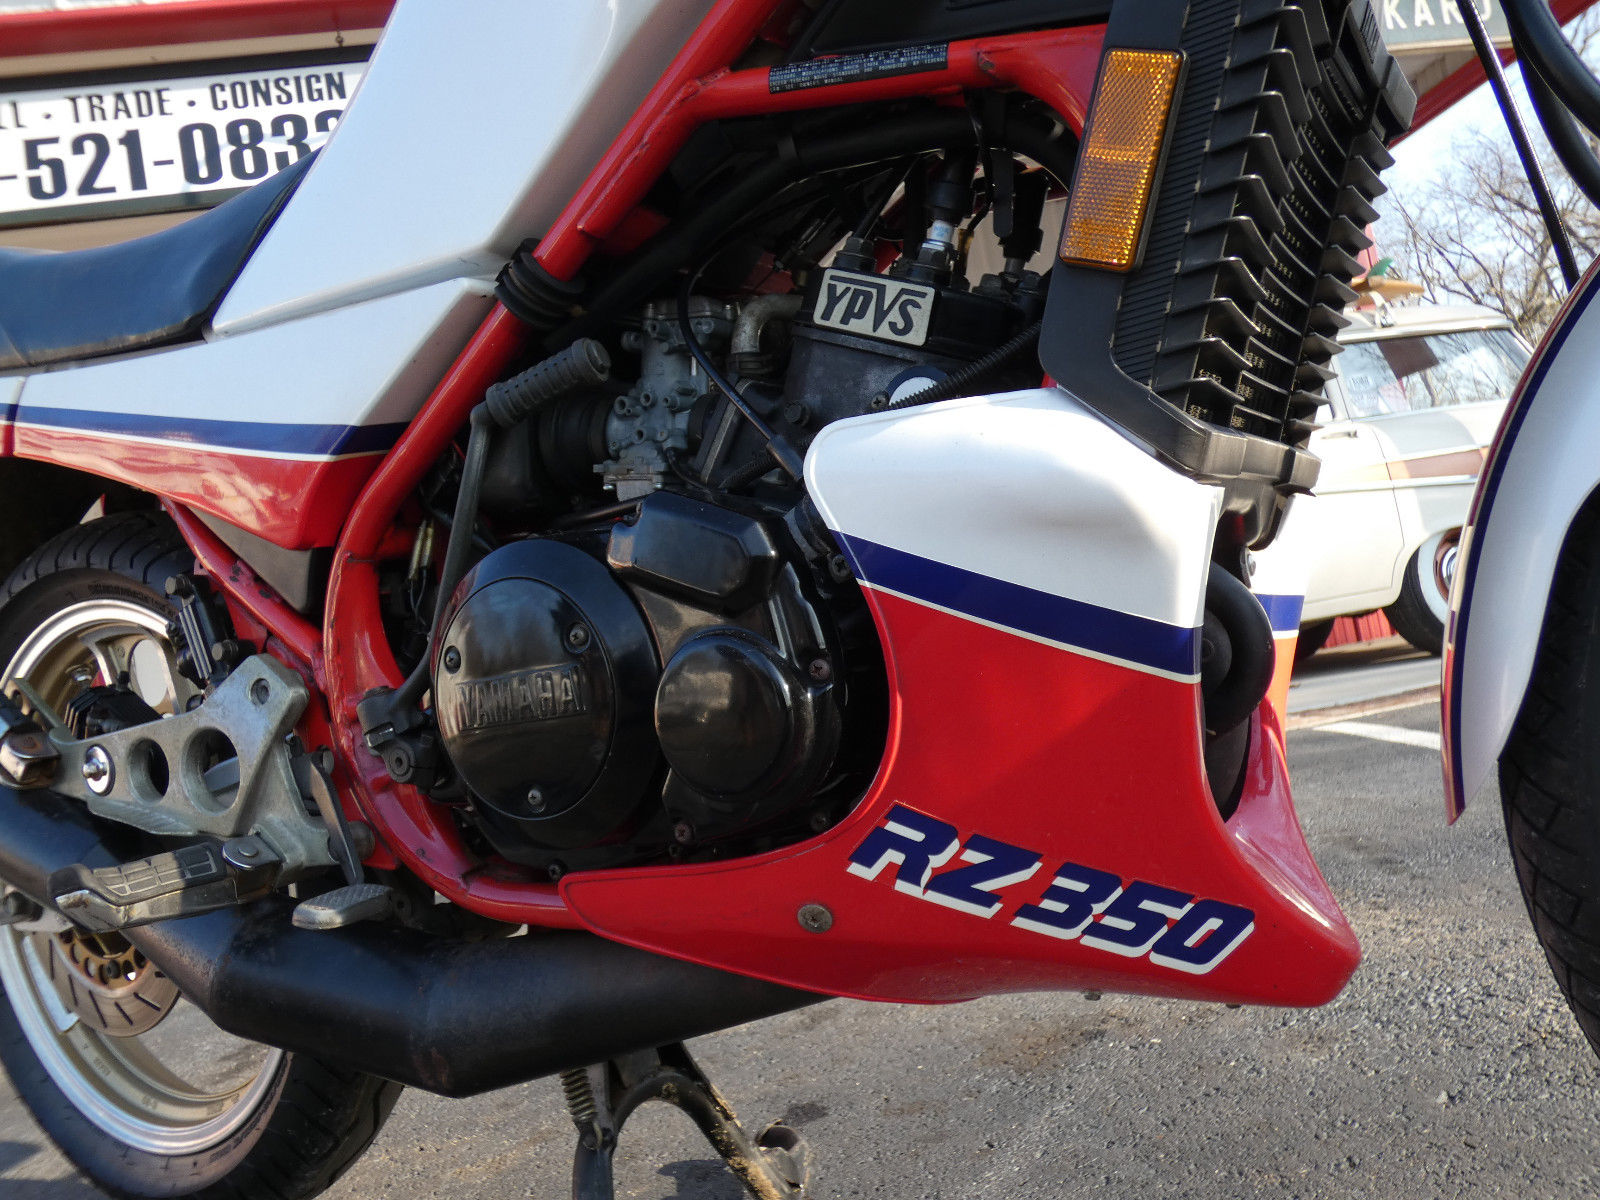 Liquid Cooled Archives - Page 5 of 18 - Rare SportBikes For Sale